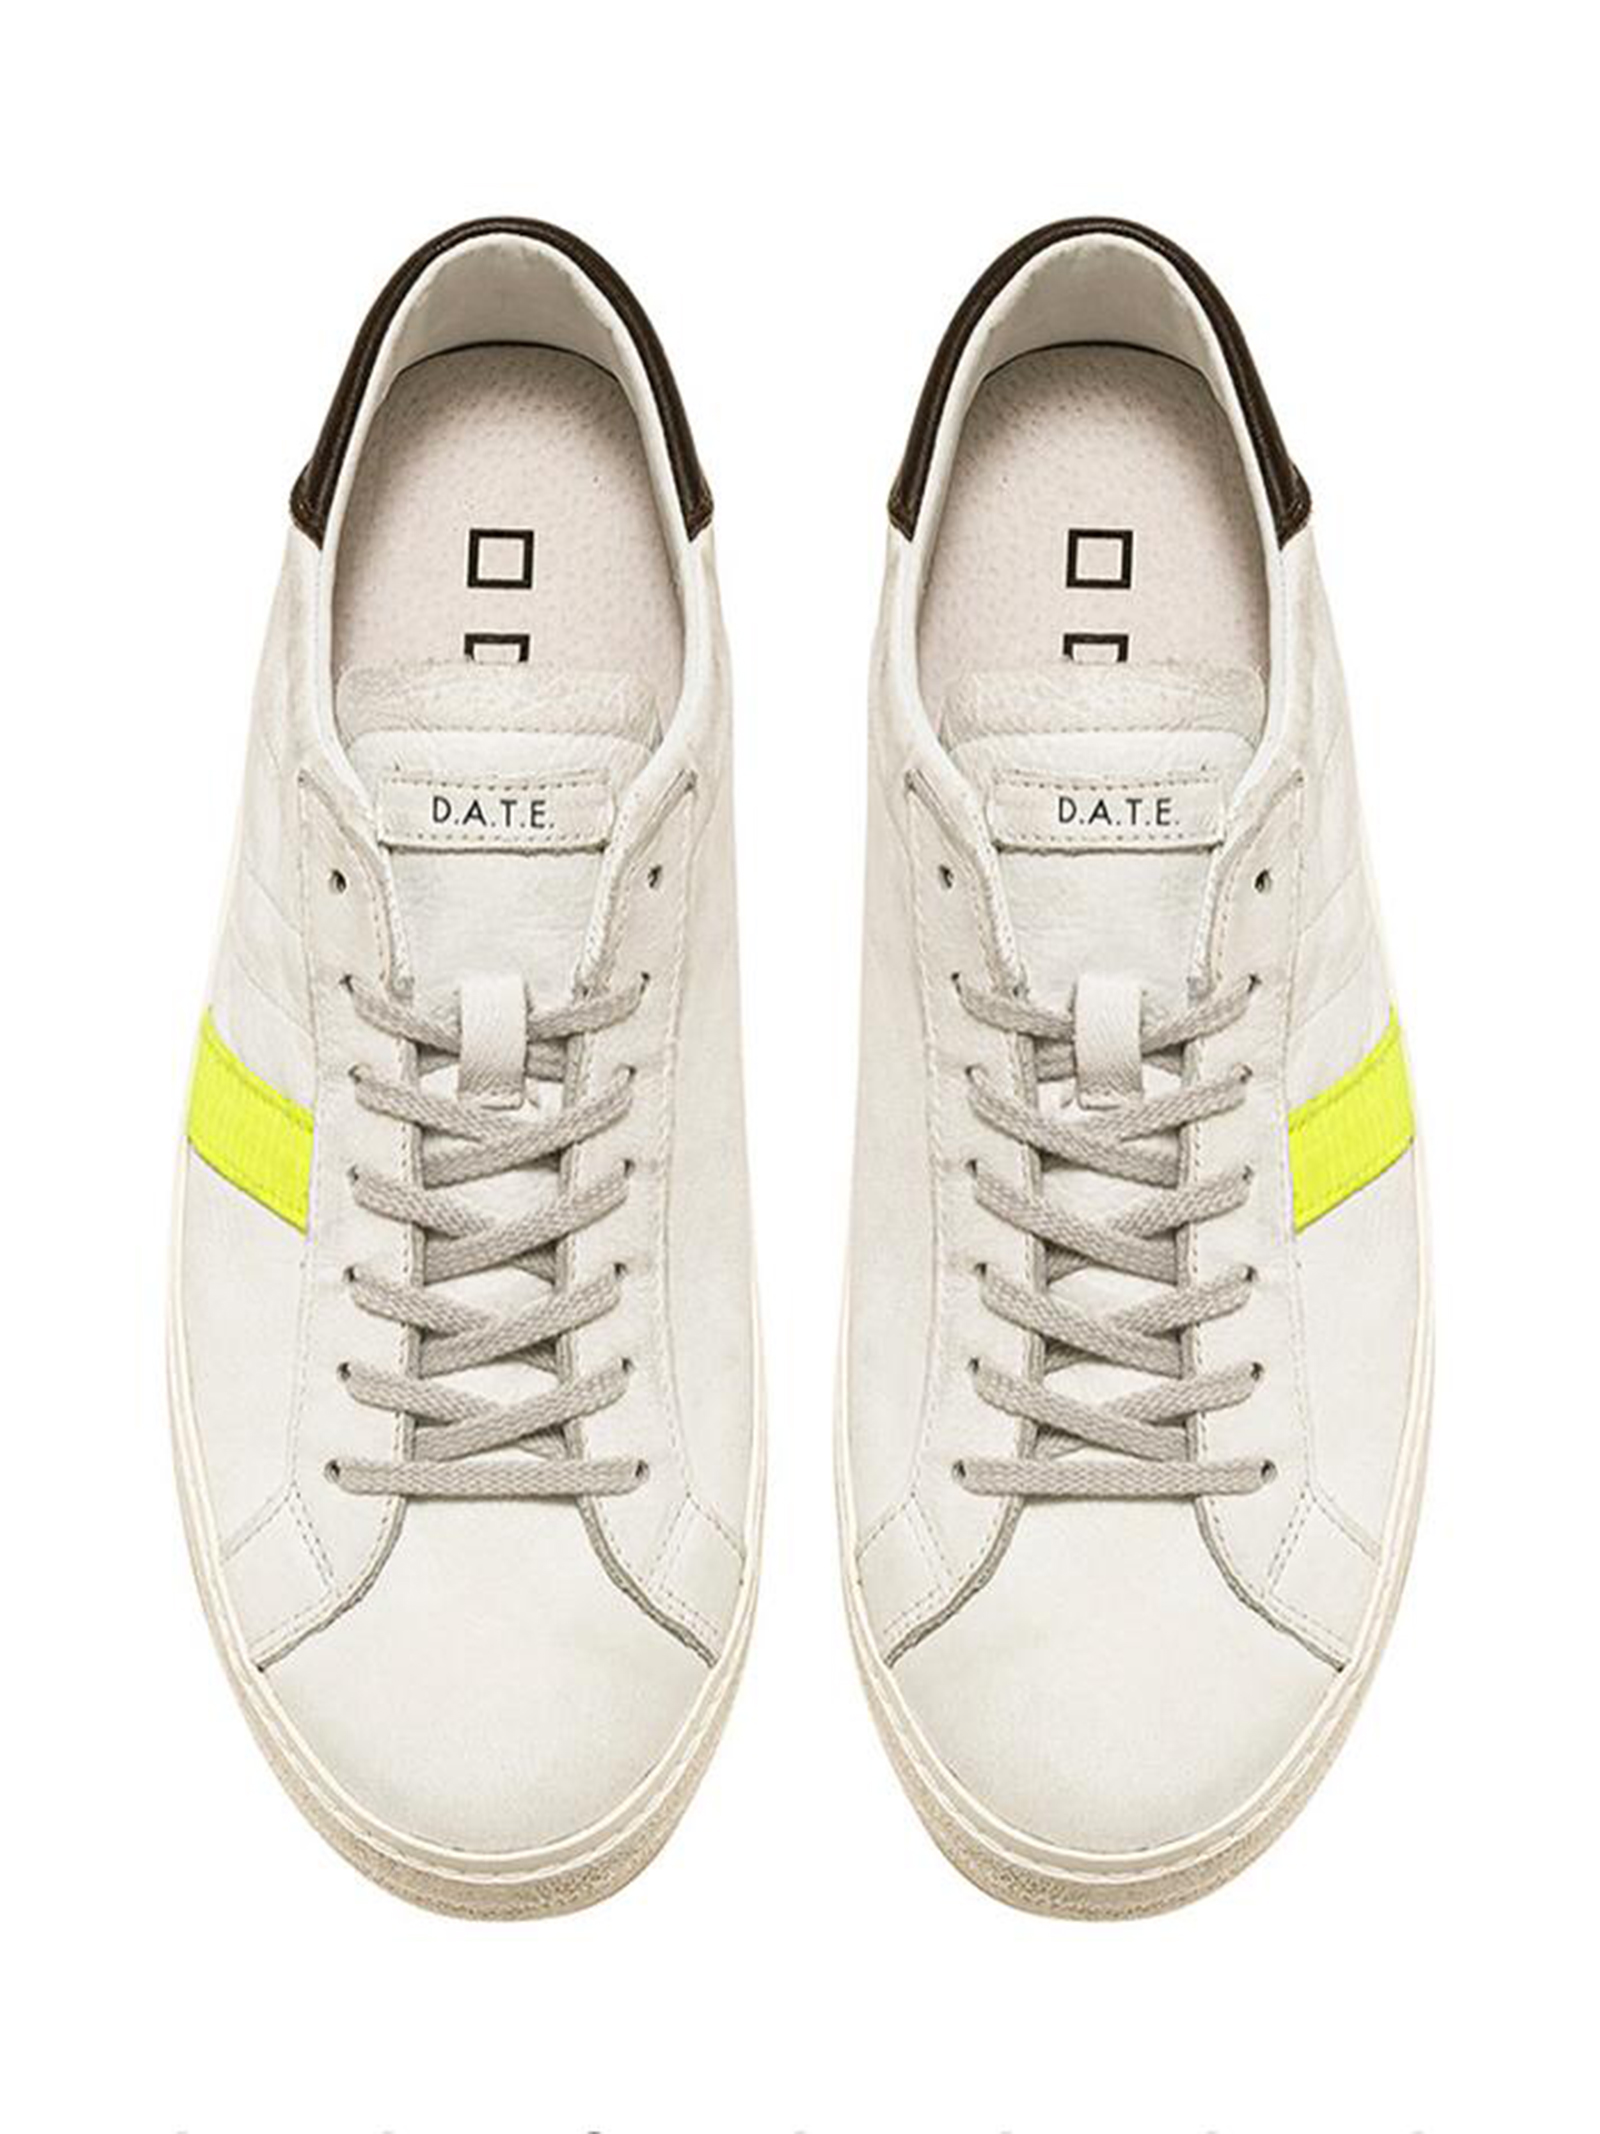 HILL LOW VINTAGE CALF WHITE-YELLOW D.A.T.E. | Scarpe | HILL LOW VINTAGE CALF WHITE-YELLOWWY